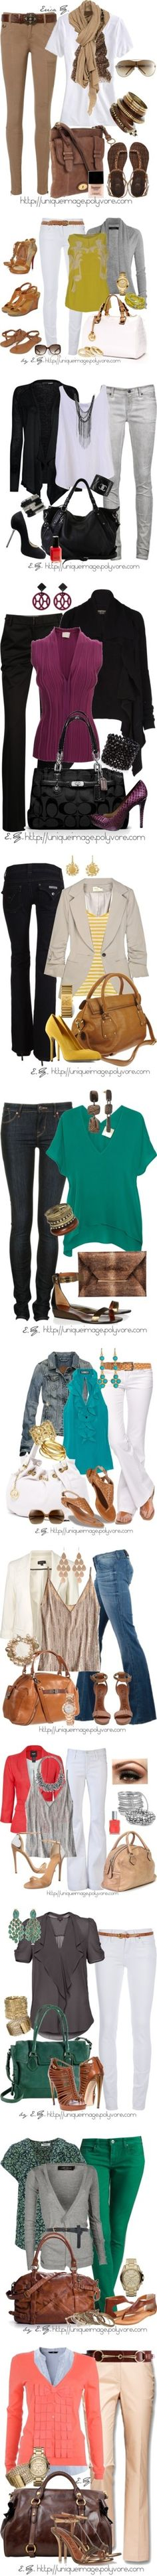 Like dark pants sets- wish I could wear white pants! Summer into fall- I really need this guide!